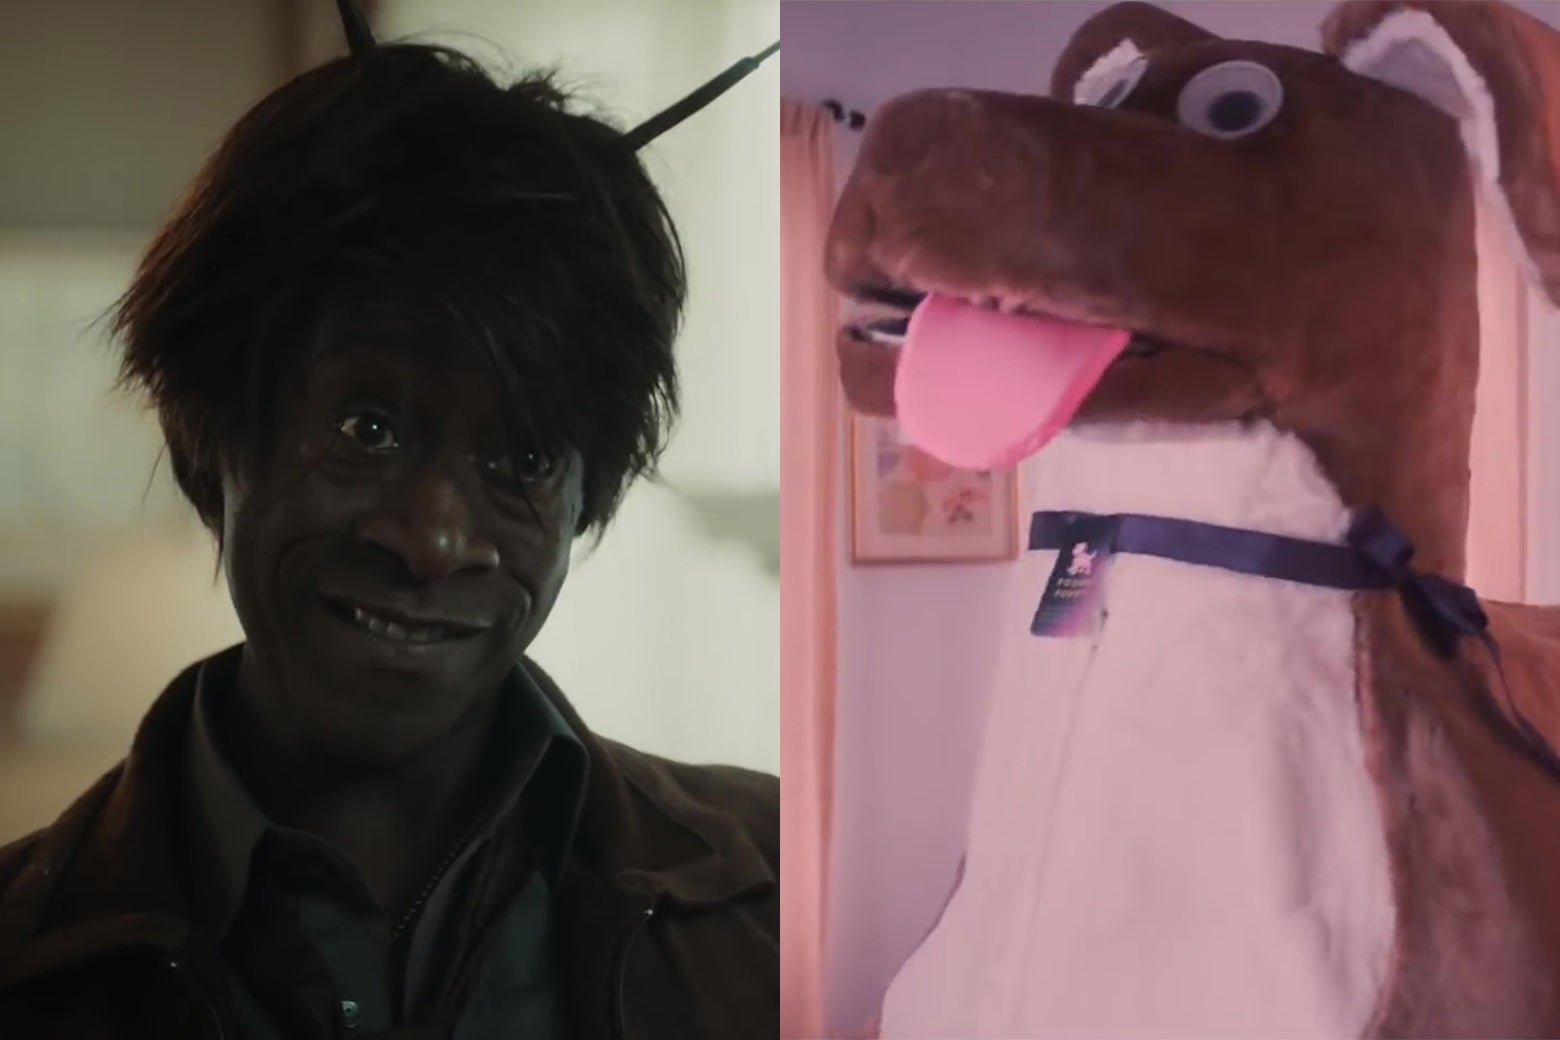 The left half is an image of Don Cheadle dressed as a roach; the right half is a giant puppy costume with googly eyes.